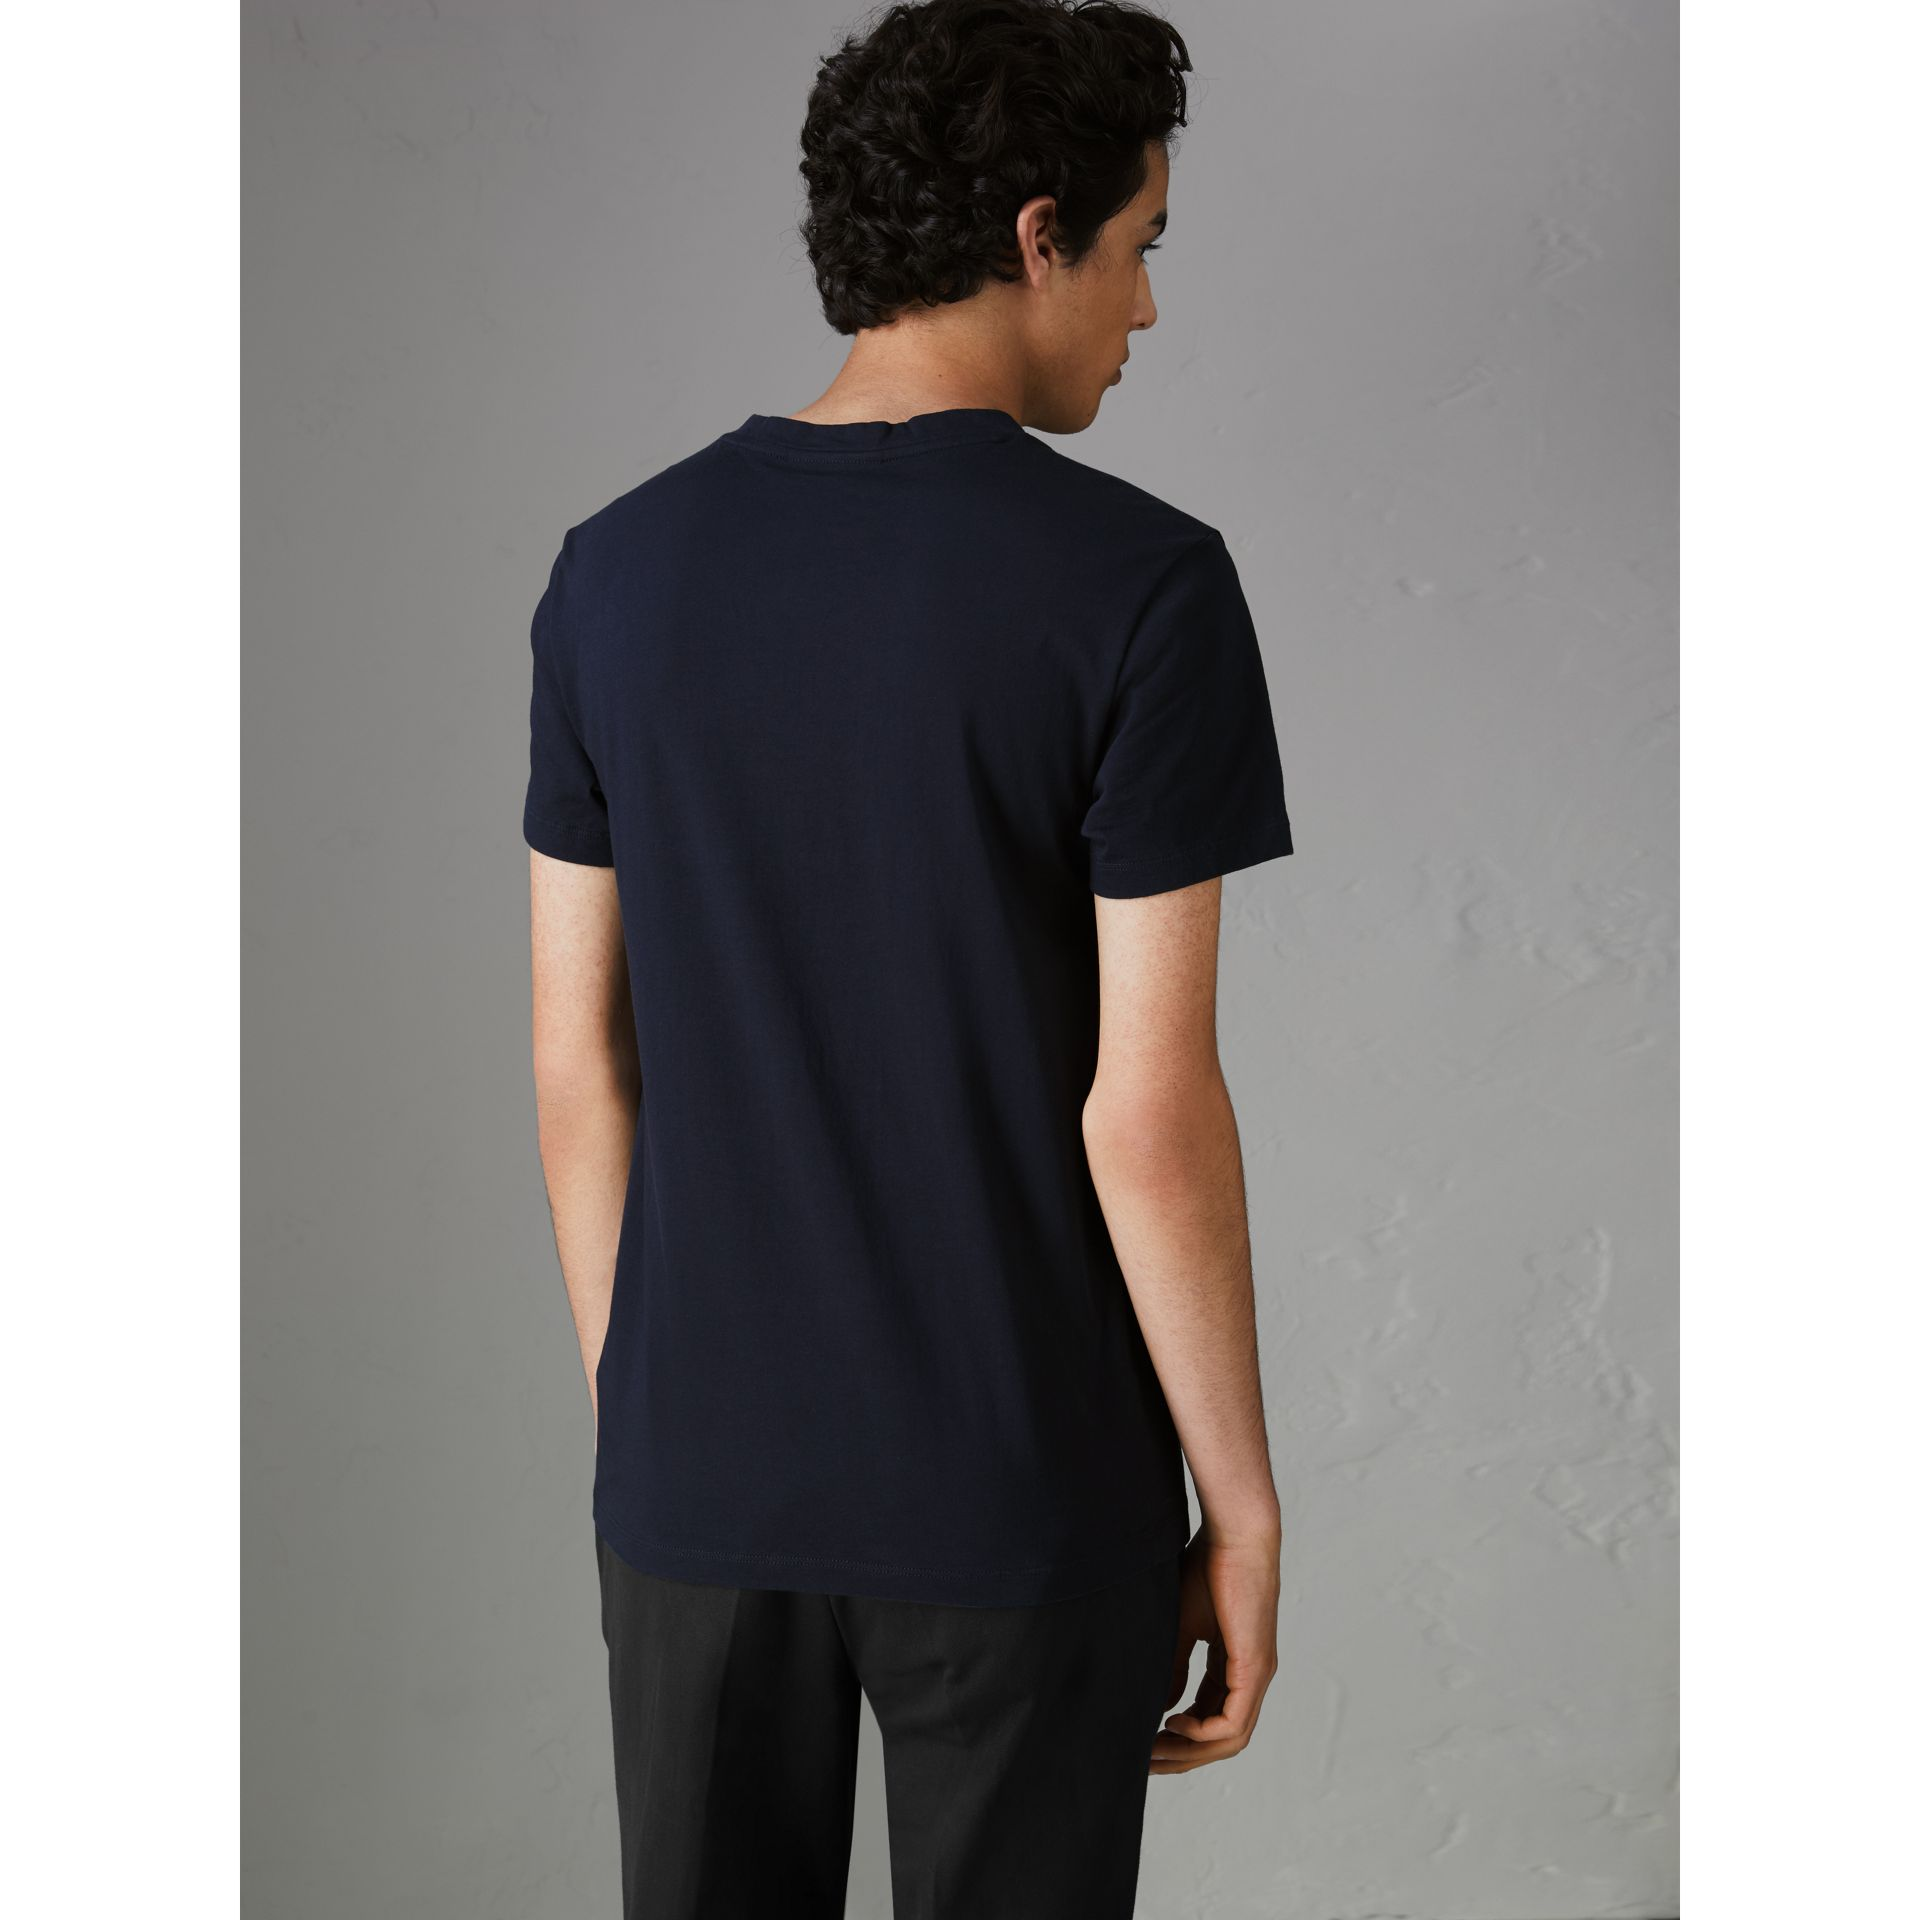 Archive Logo Cotton T-shirt in Navy - Men | Burberry Singapore - gallery image 2